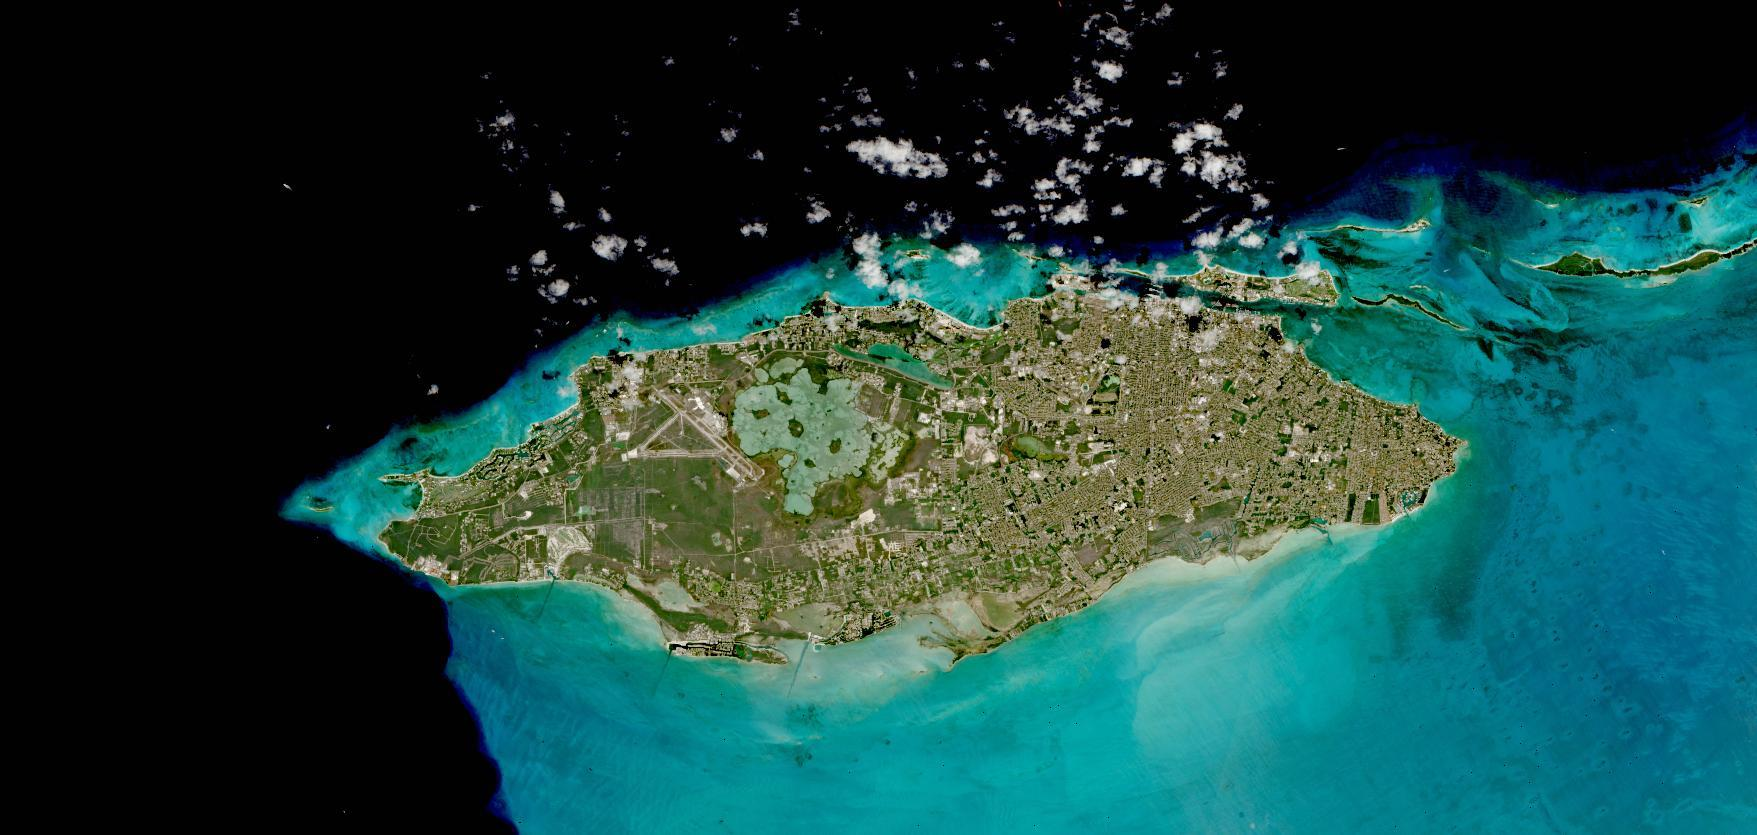 Nassau, New Providence Island, Bahamas on 18 March 2021 (Sentinel 2A & B/MSI)